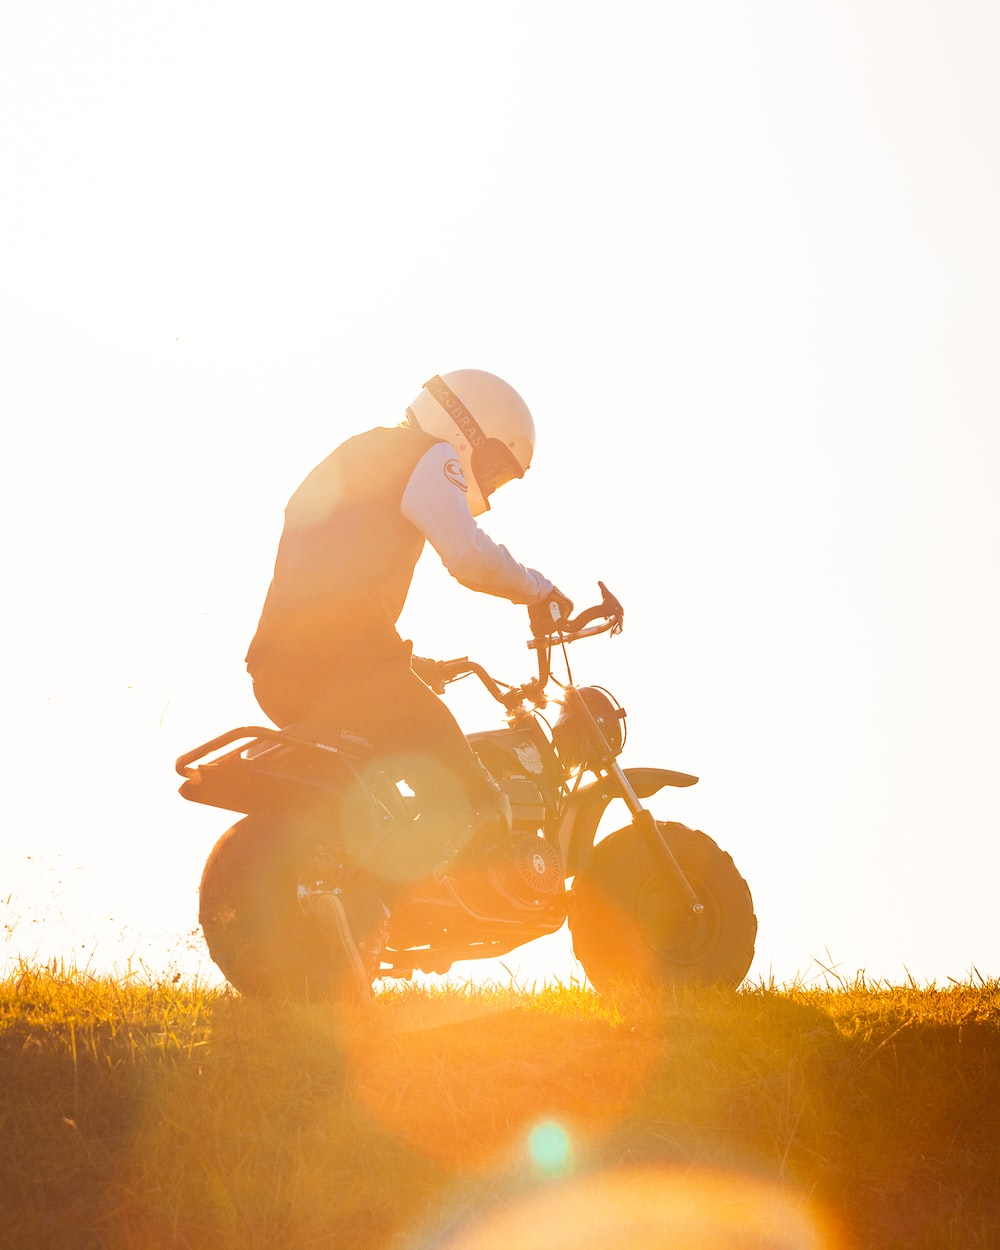 man riding motorcycle on grass field during daytime